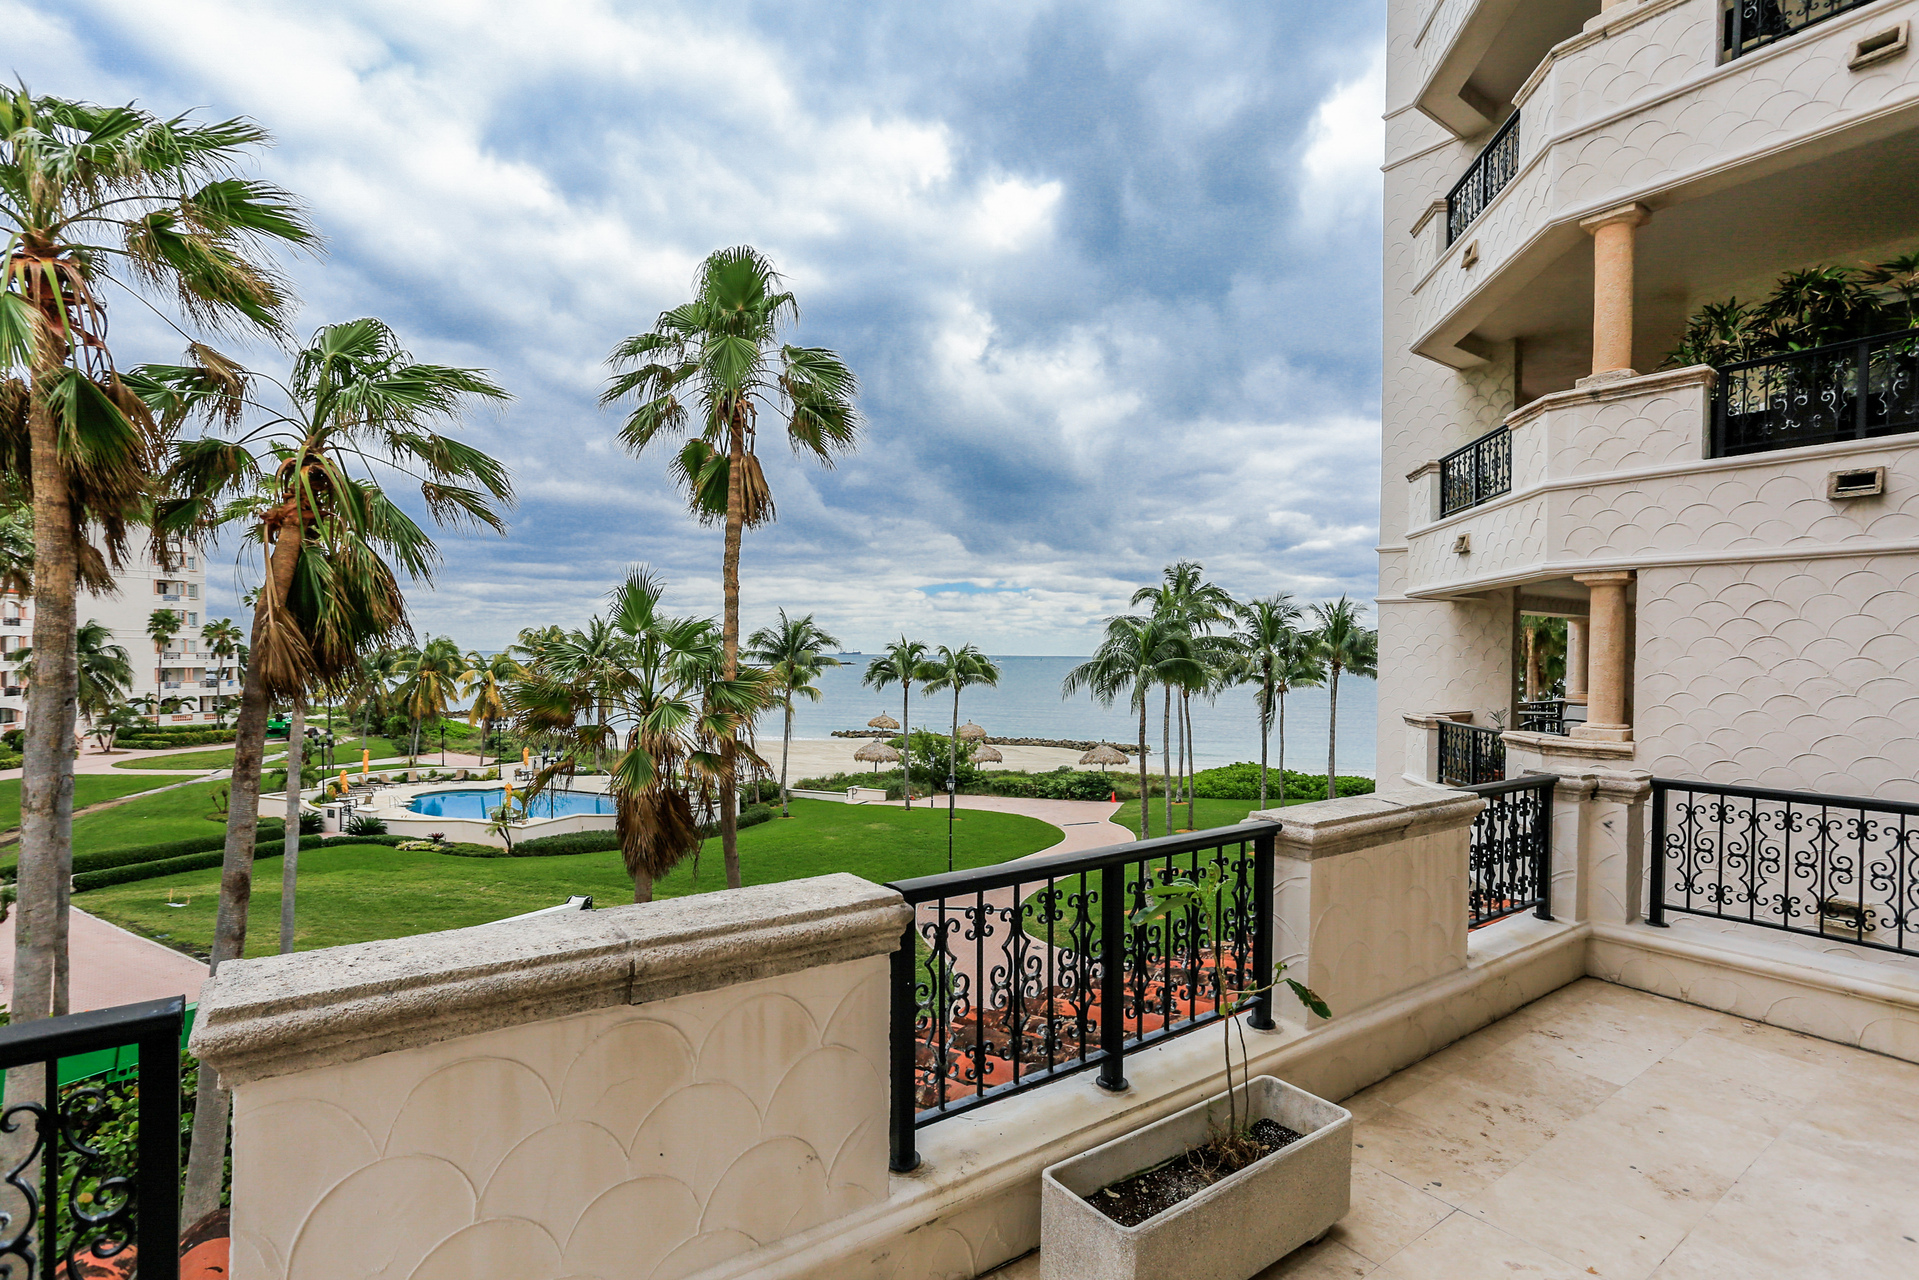 Condominium for Sale at 7931 Fisher Island Dr #79317931 Fisher Island Dr #79317931 Fisher Island Dr #793 Miami Beach, Florida 33109 United States